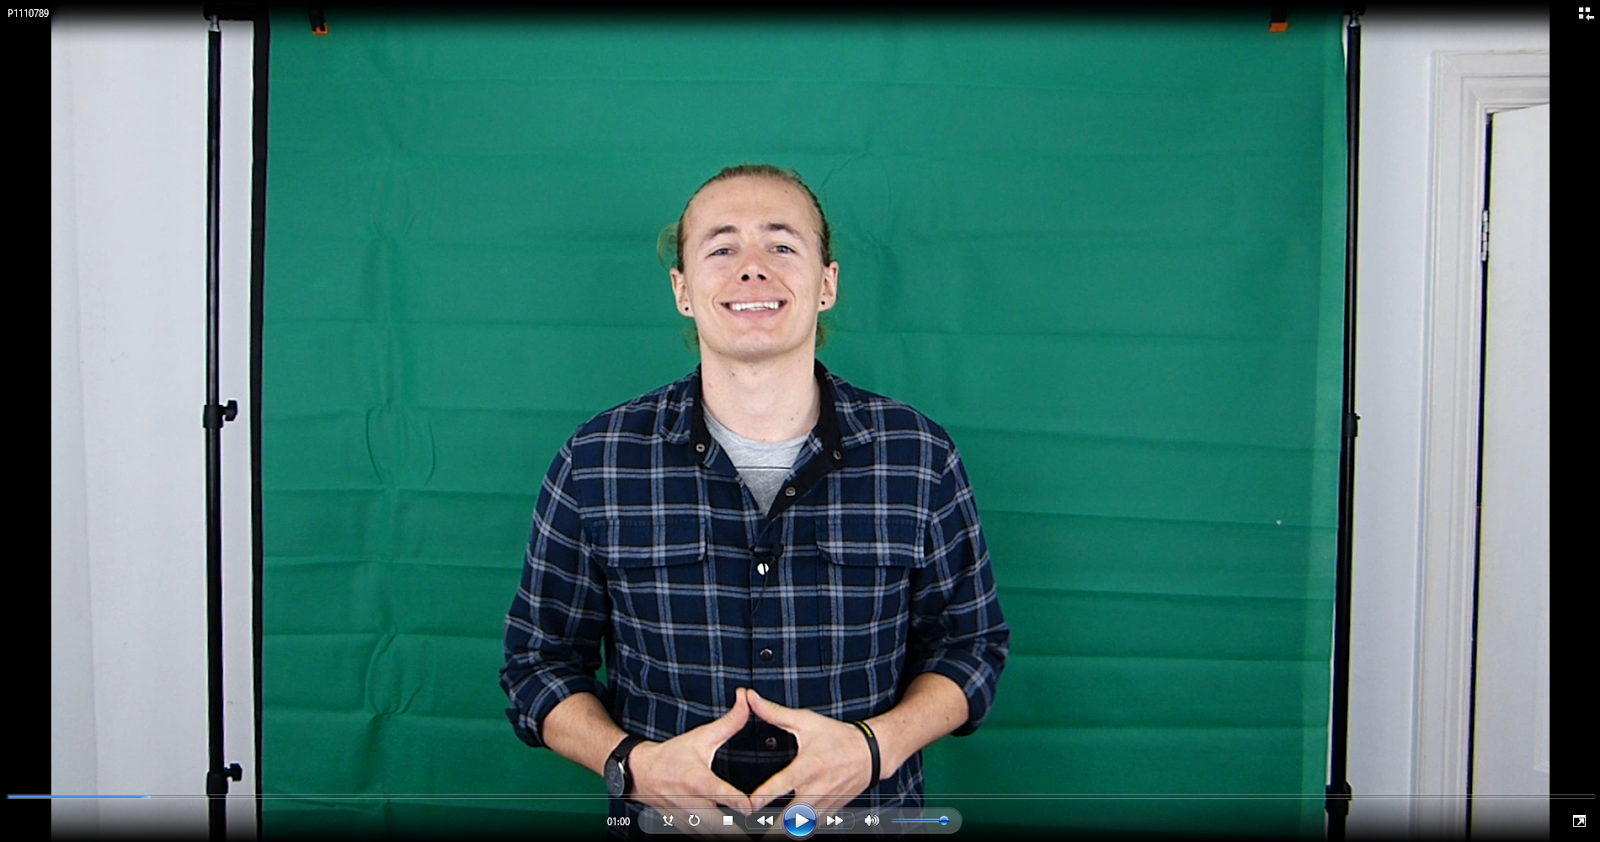 how to put stuff on a green screen sony vegas